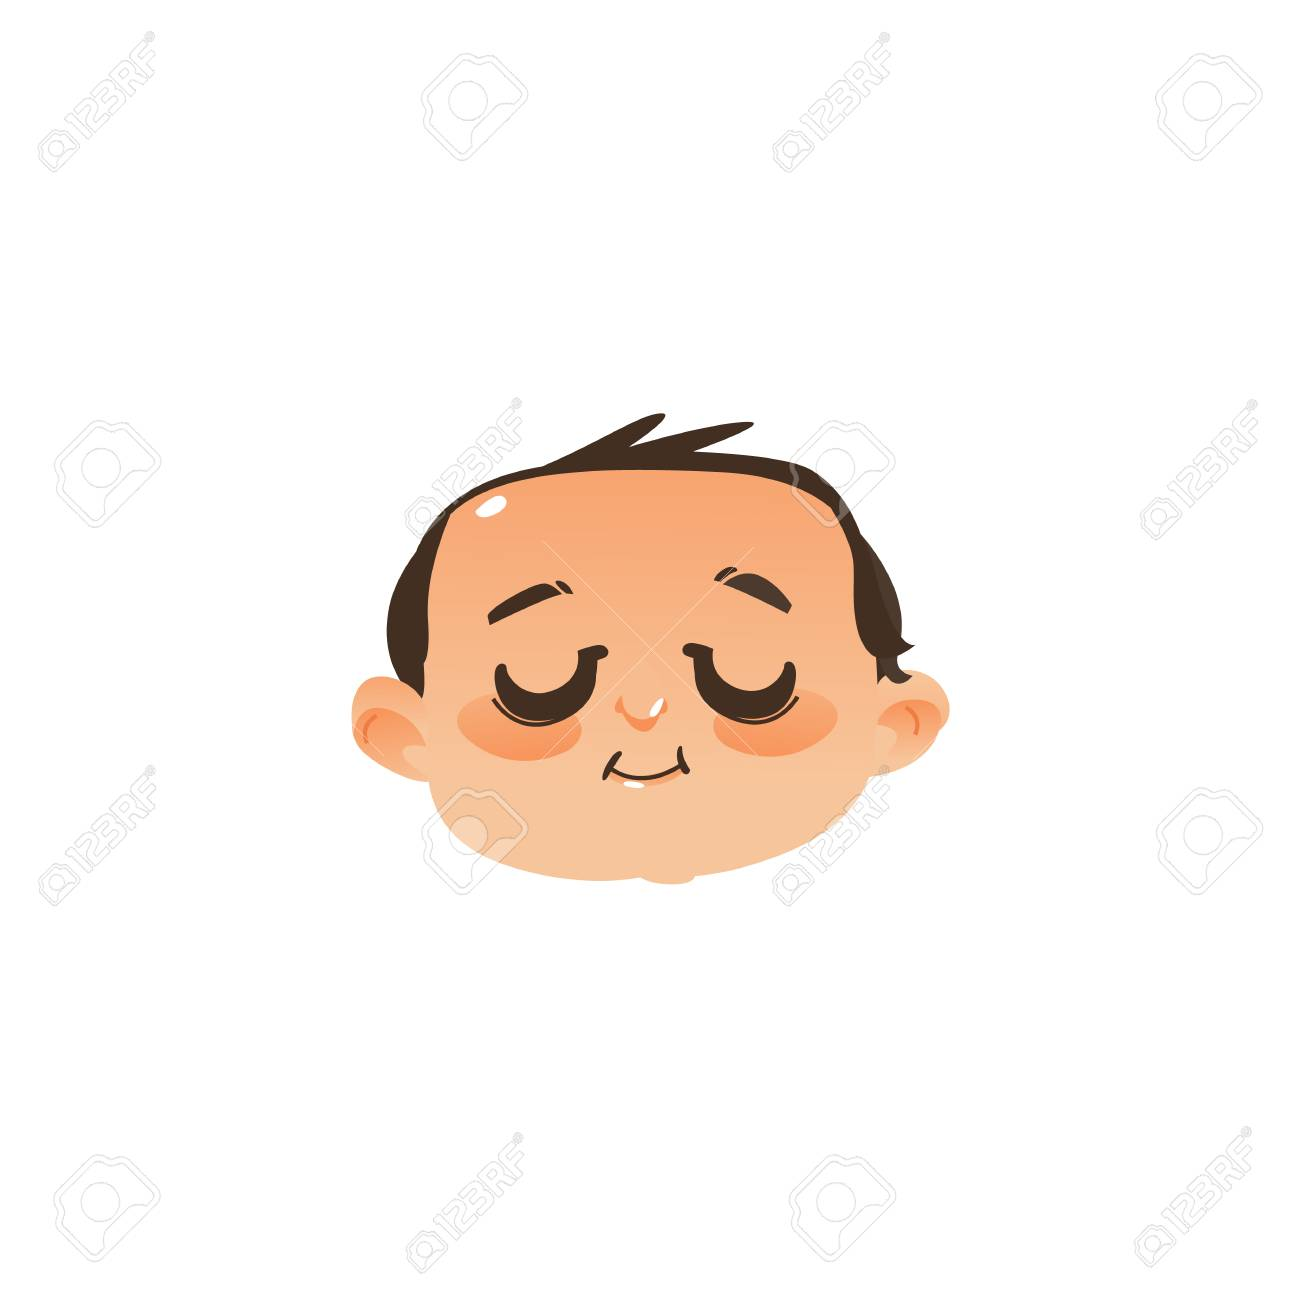 comic style sleeping baby face head icon with closed eyes flat